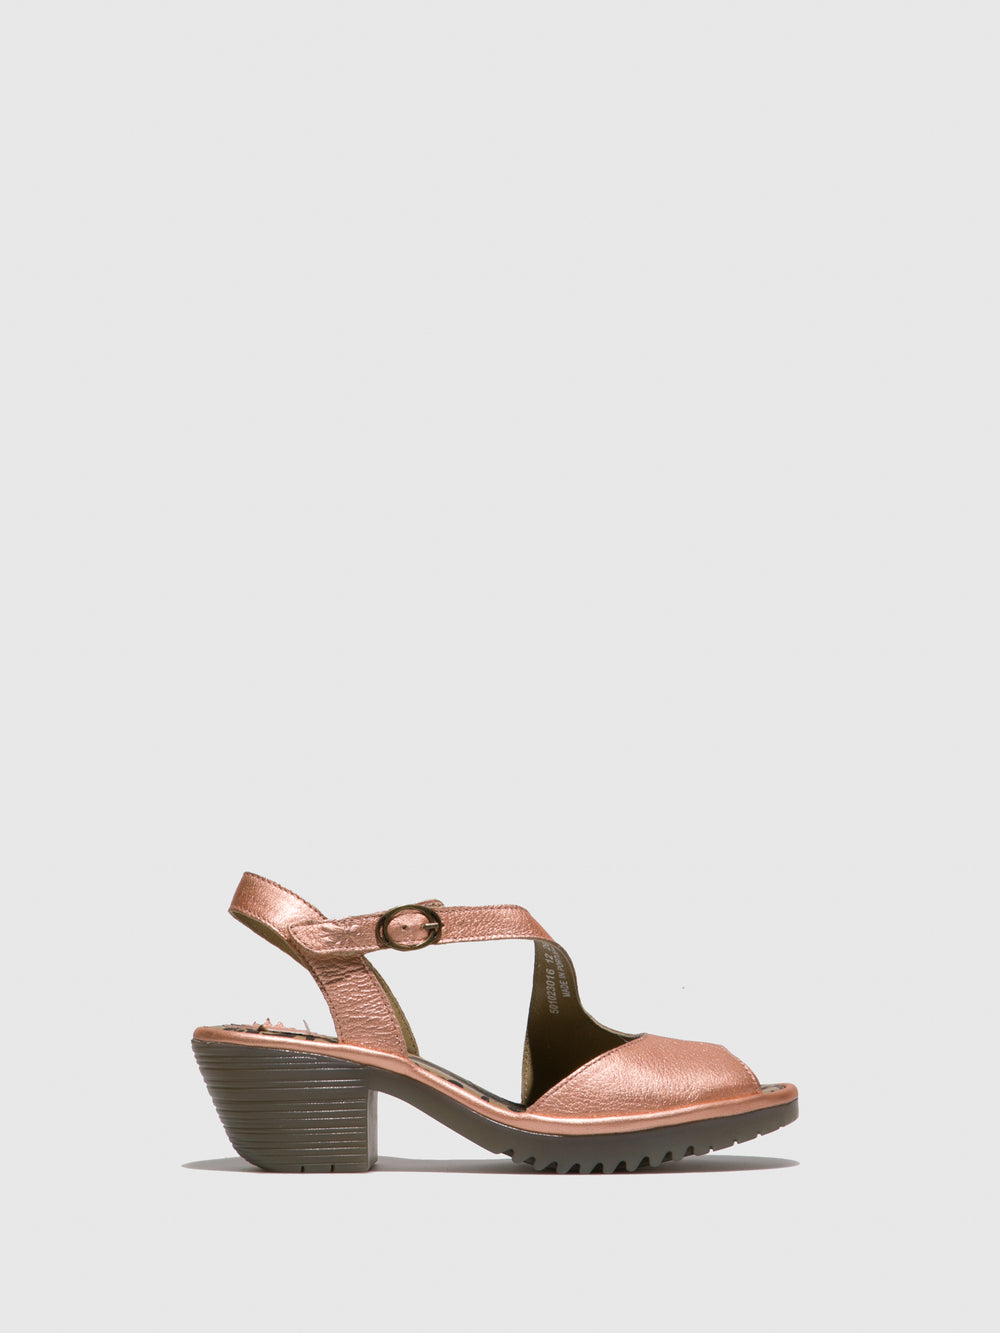 Velcro Sandals WYNO023FLY BLUSH GOLD